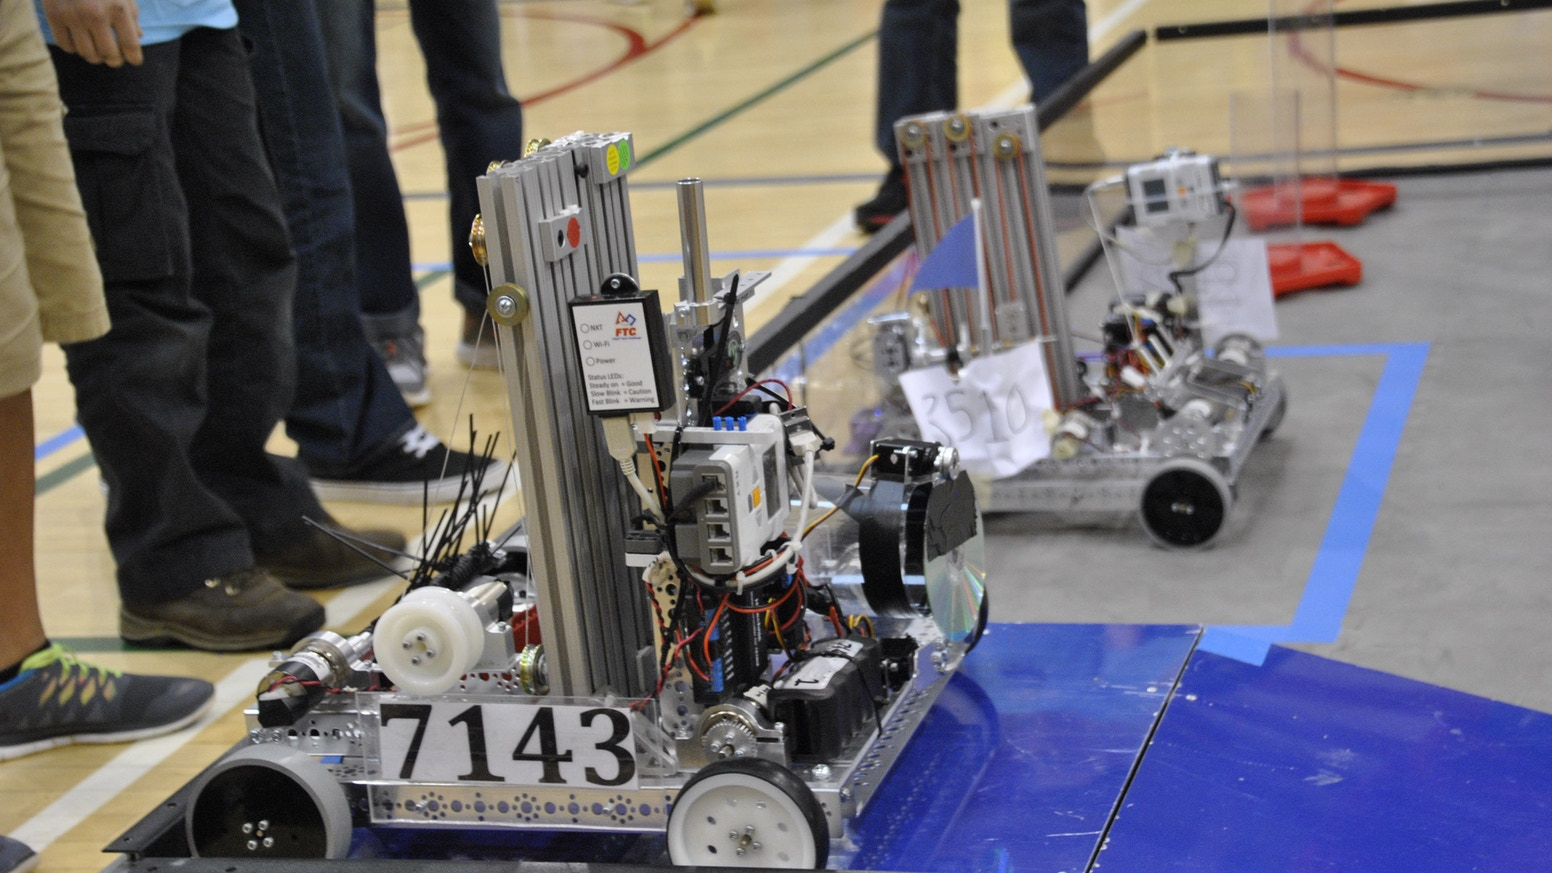 FIRST FTC Student Robot Construction Team #7143 by Fluid ...